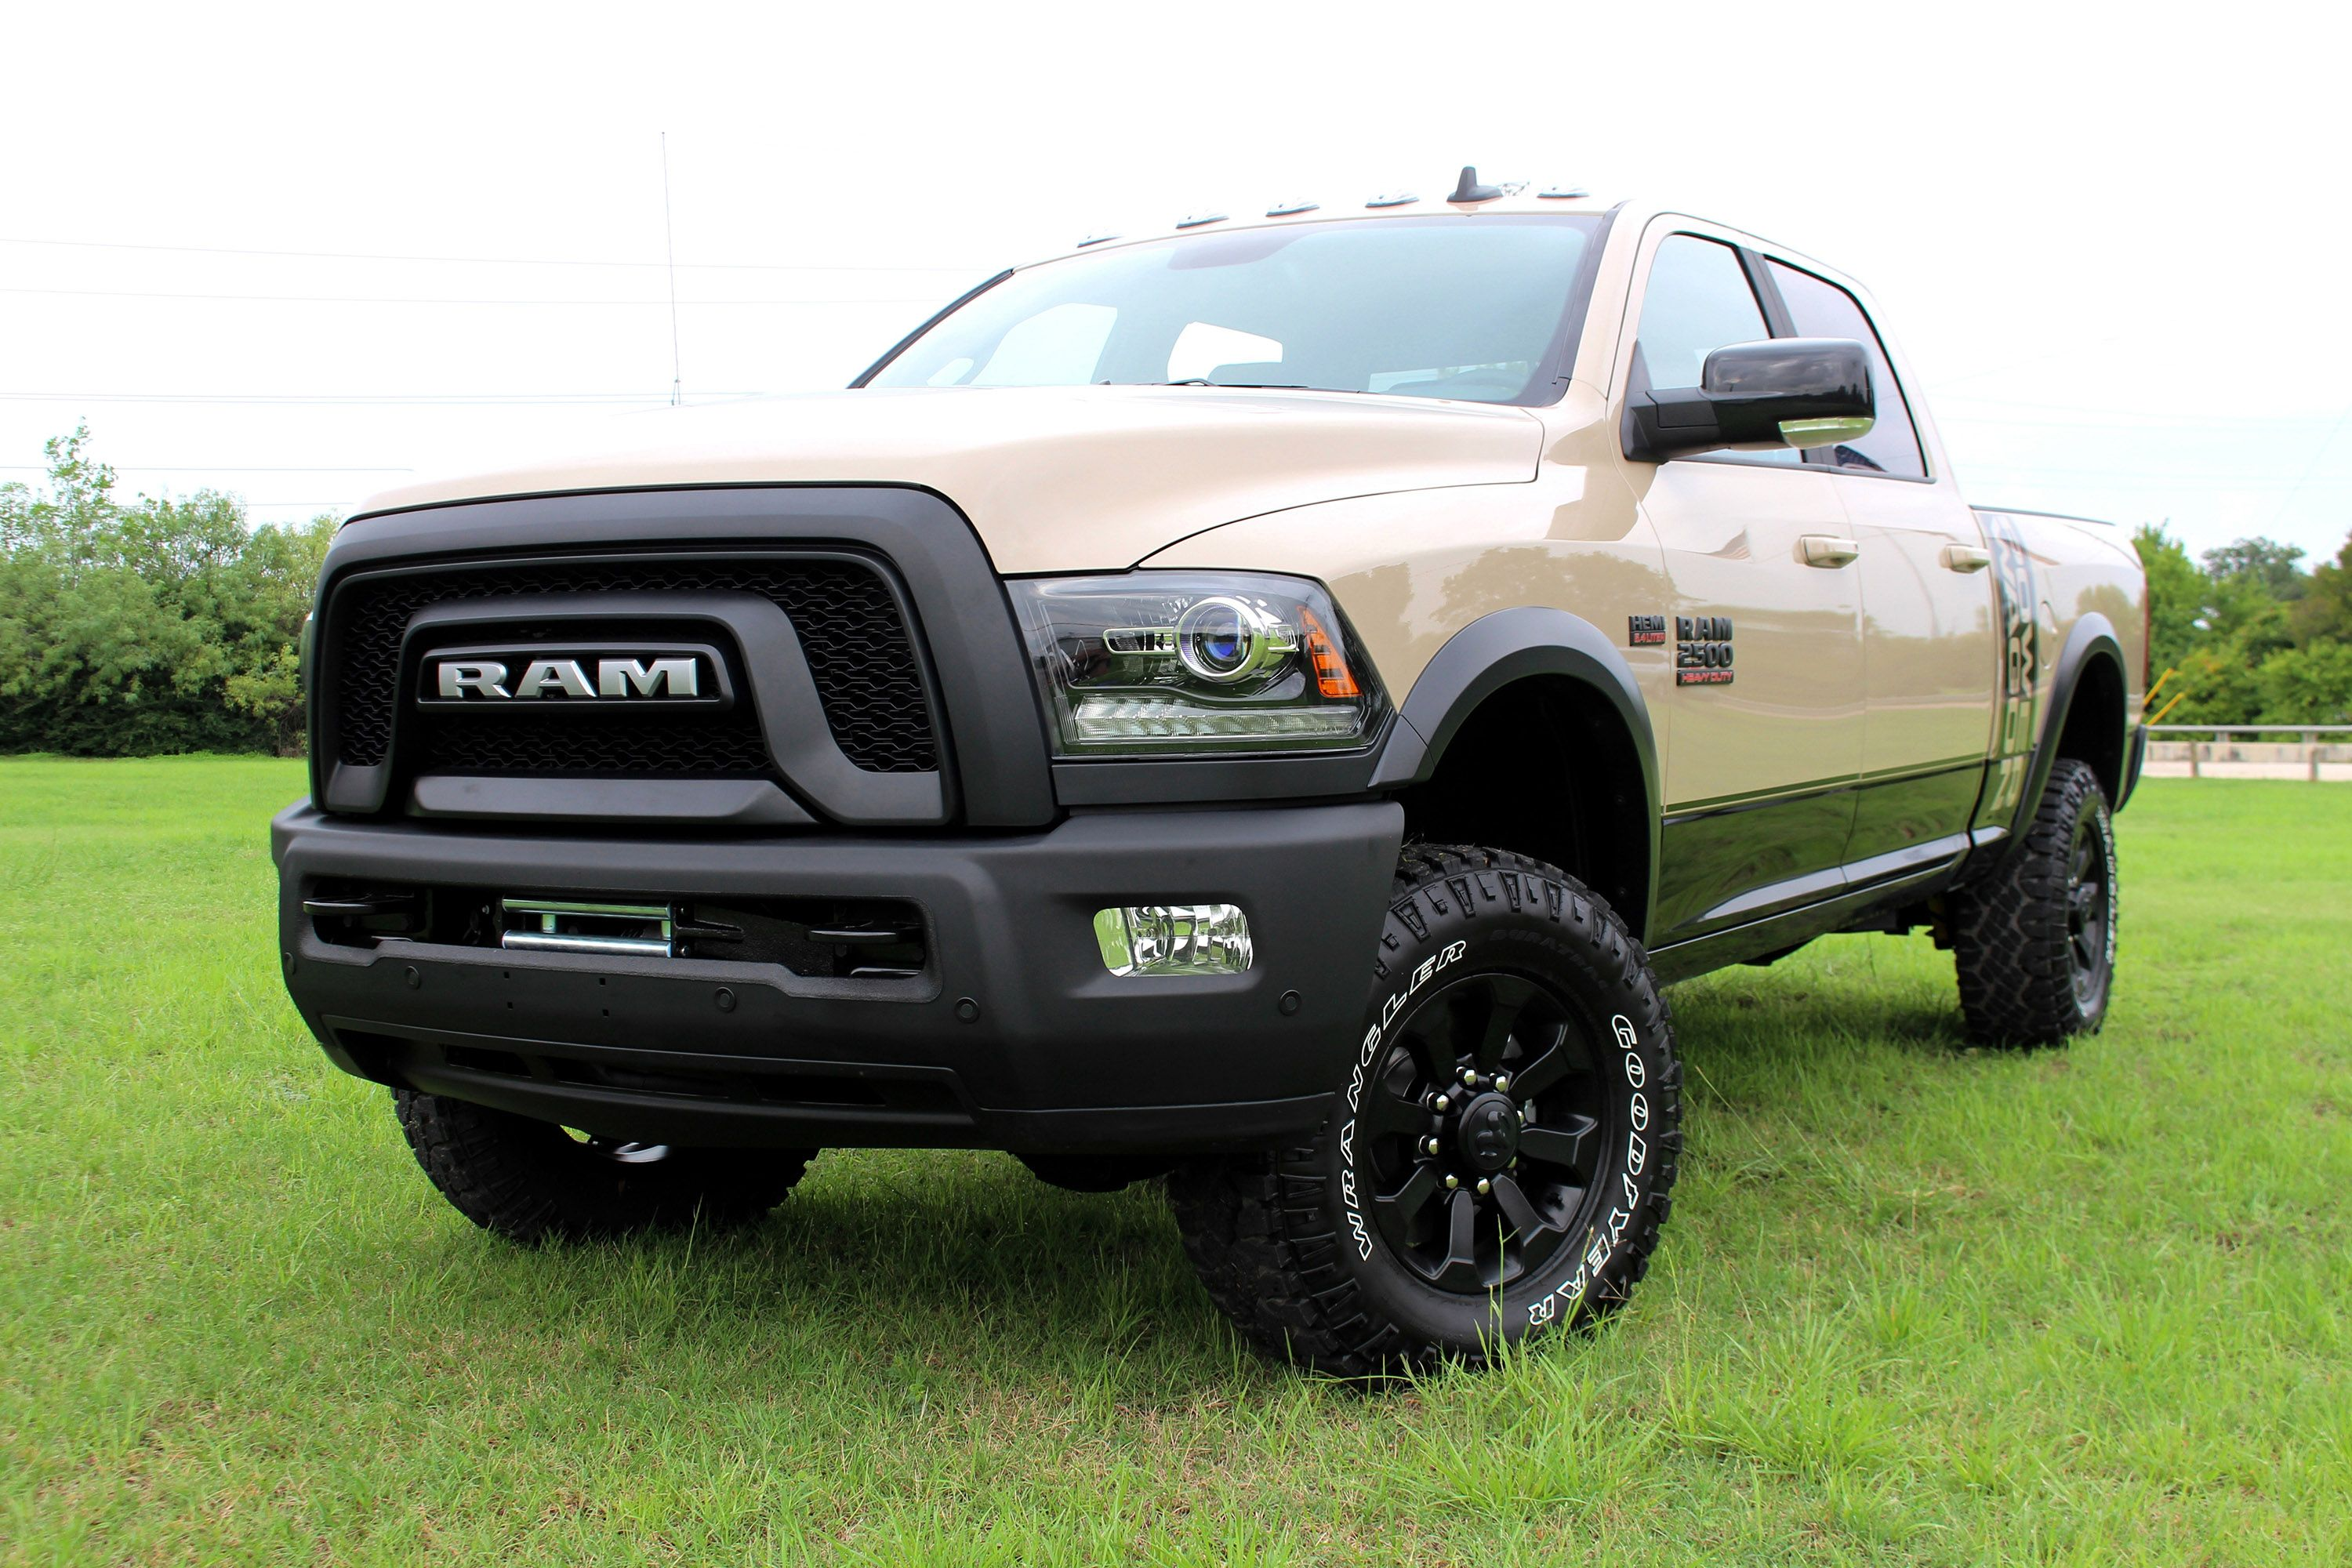 Ram Announces New Features For The Mojave Sand Edition Truck Voitures Et Motos Voiture